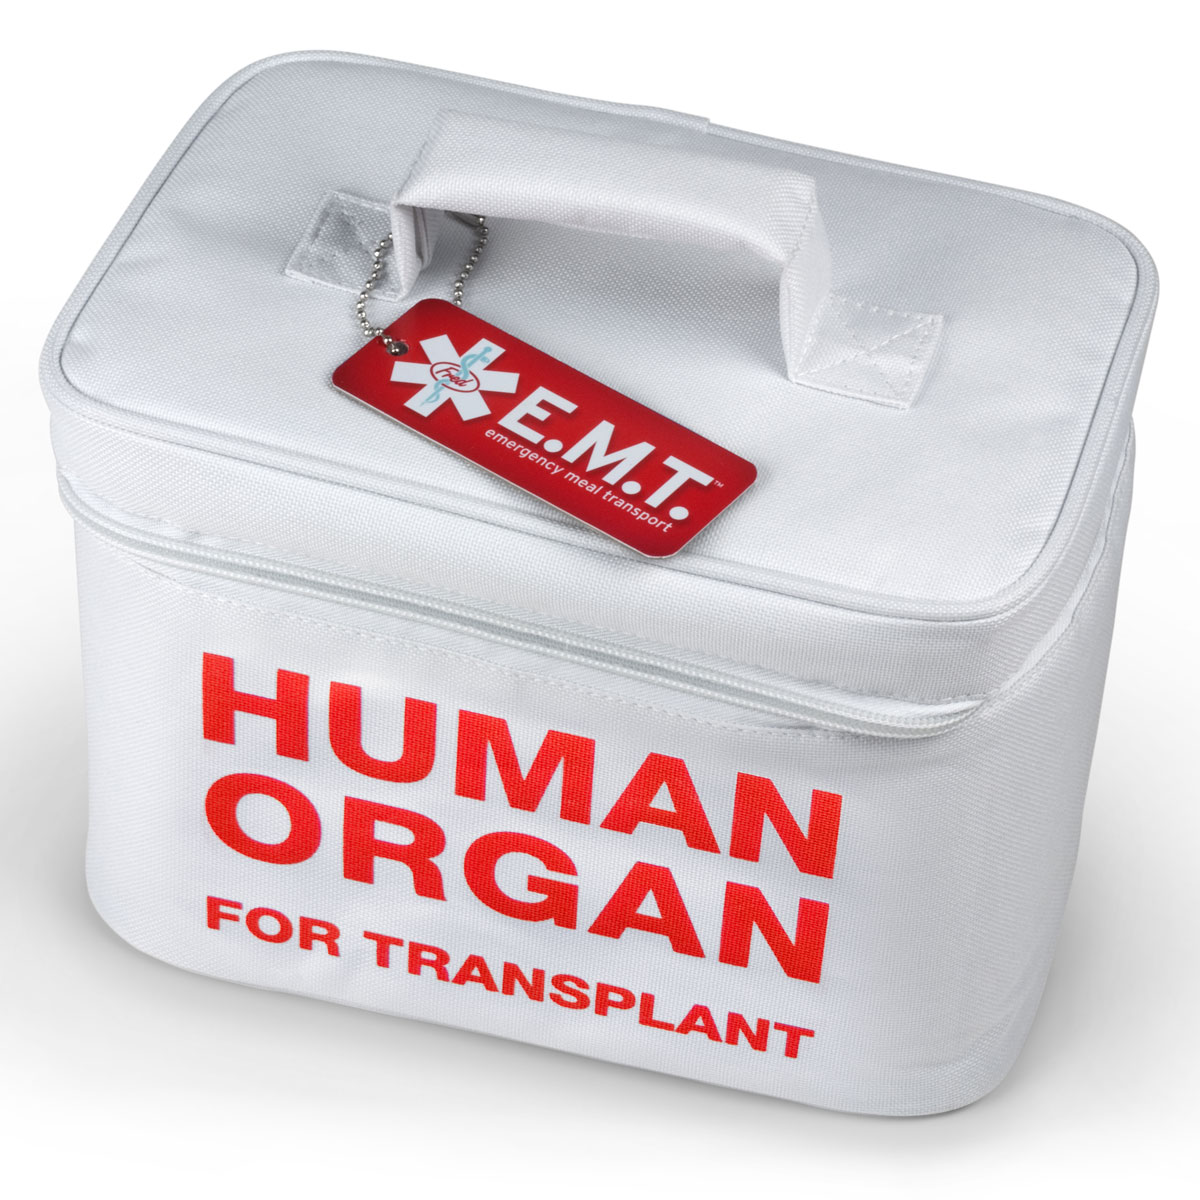 Human Organ For Transplant - Insulated Lunch Tote